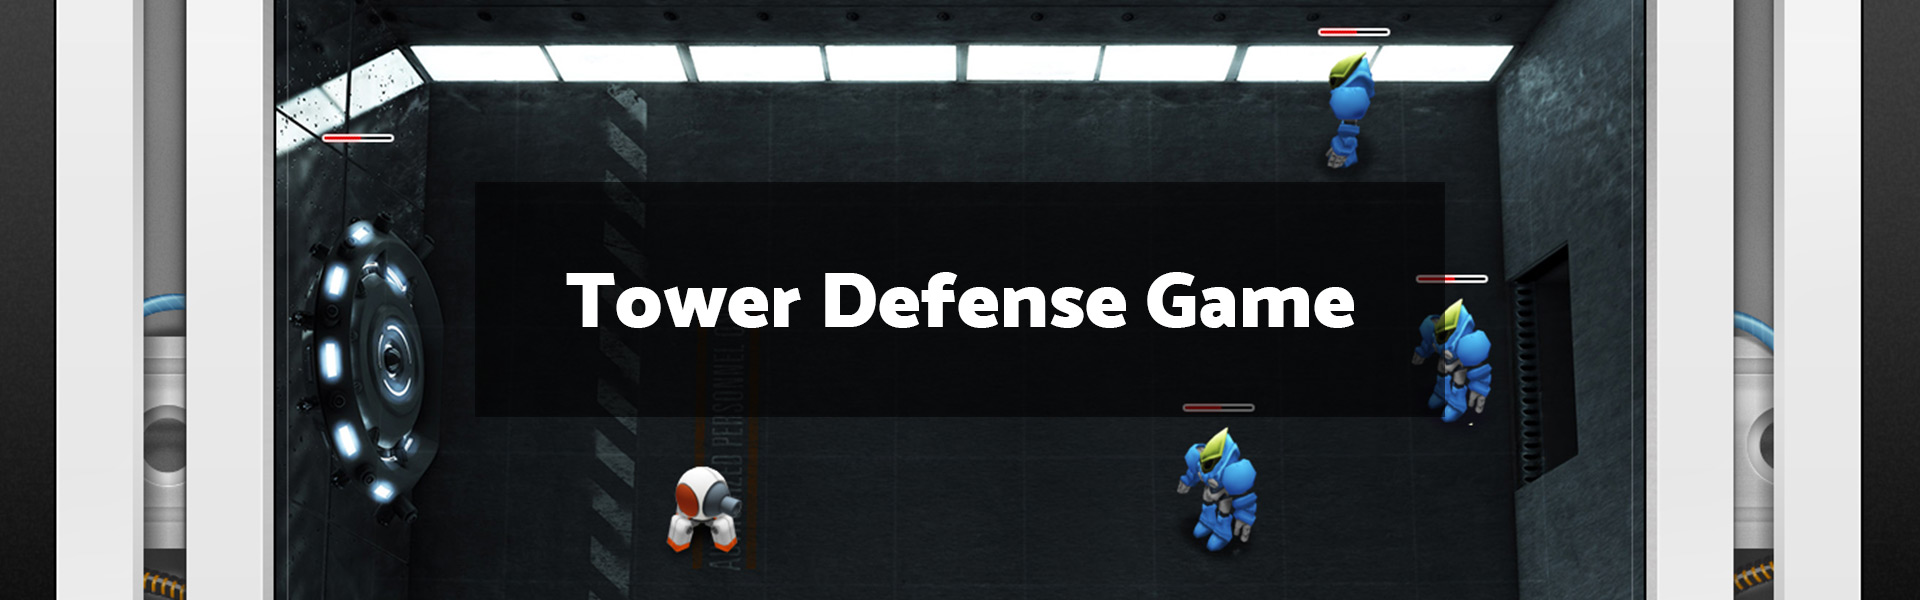 TowerDefense_Banner-2